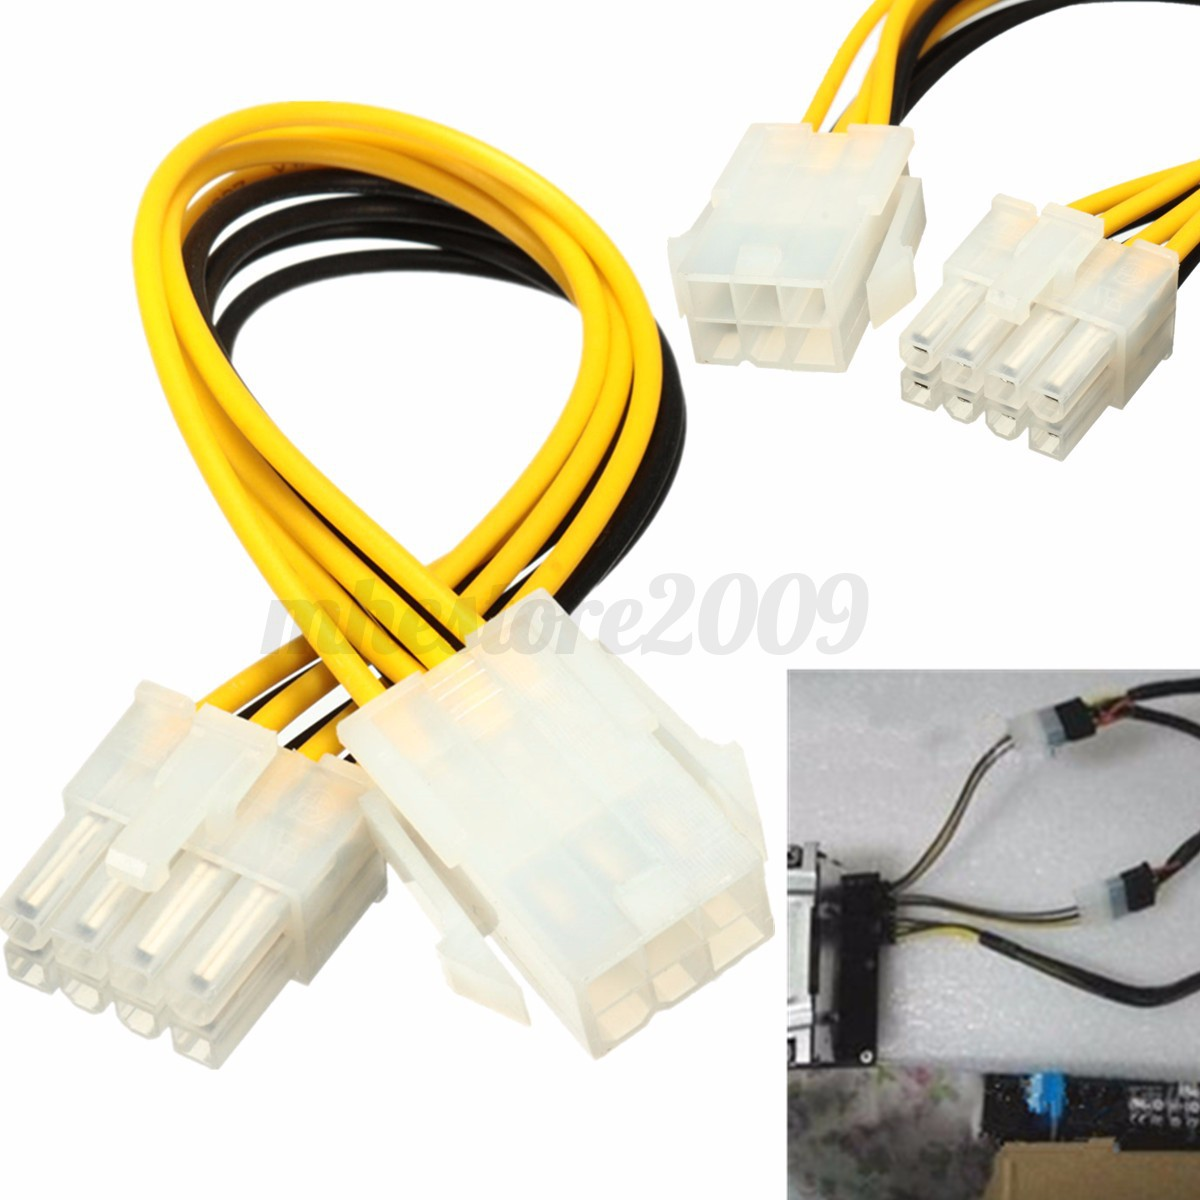 5 pin pci express adapter 1997 ford f150 headlight switch wiring diagram 6 to 8 20cm cable pcie graphics card